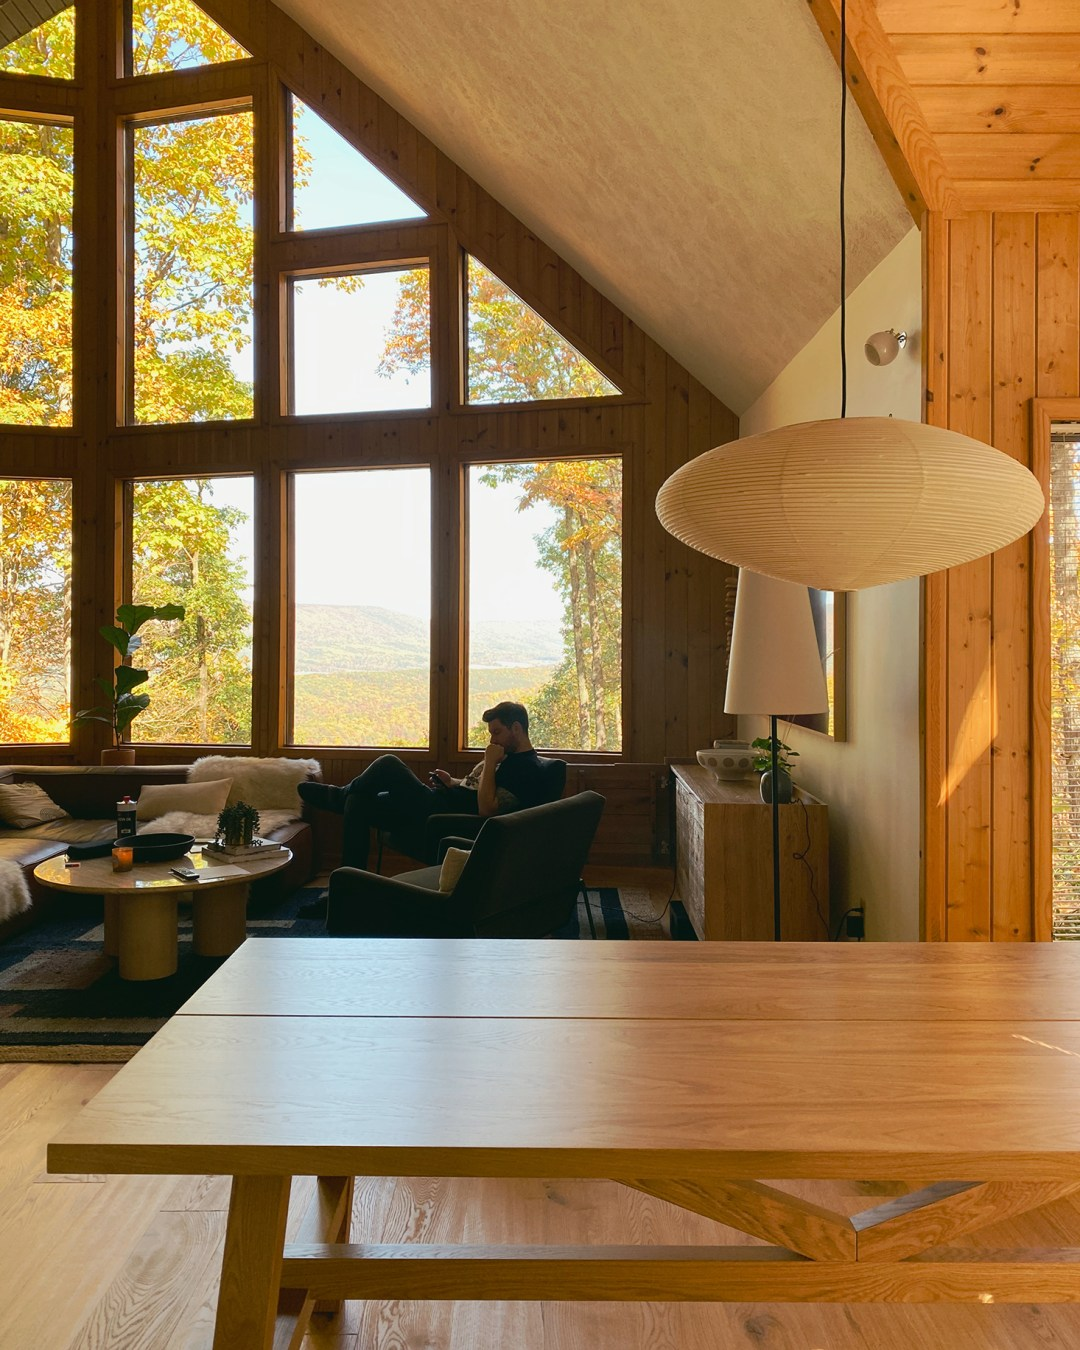 Cabin view with mockelby dining table and noguchi pendant